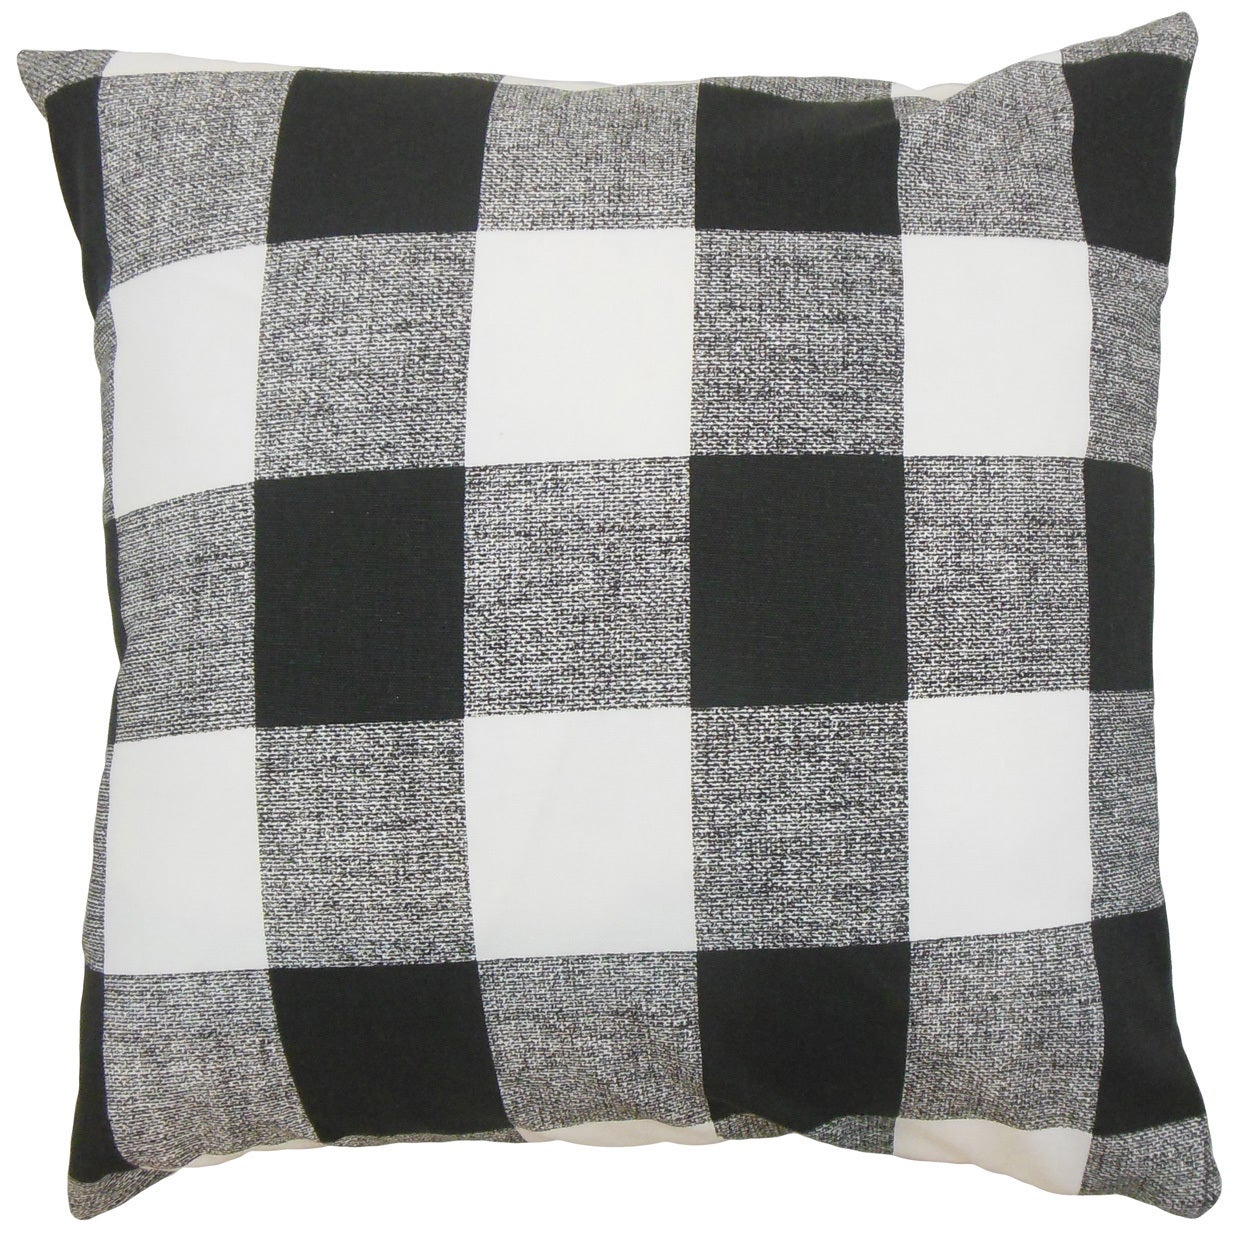 Alfonso Plaid Euro Sham Black White On Sale Overstock 13332344